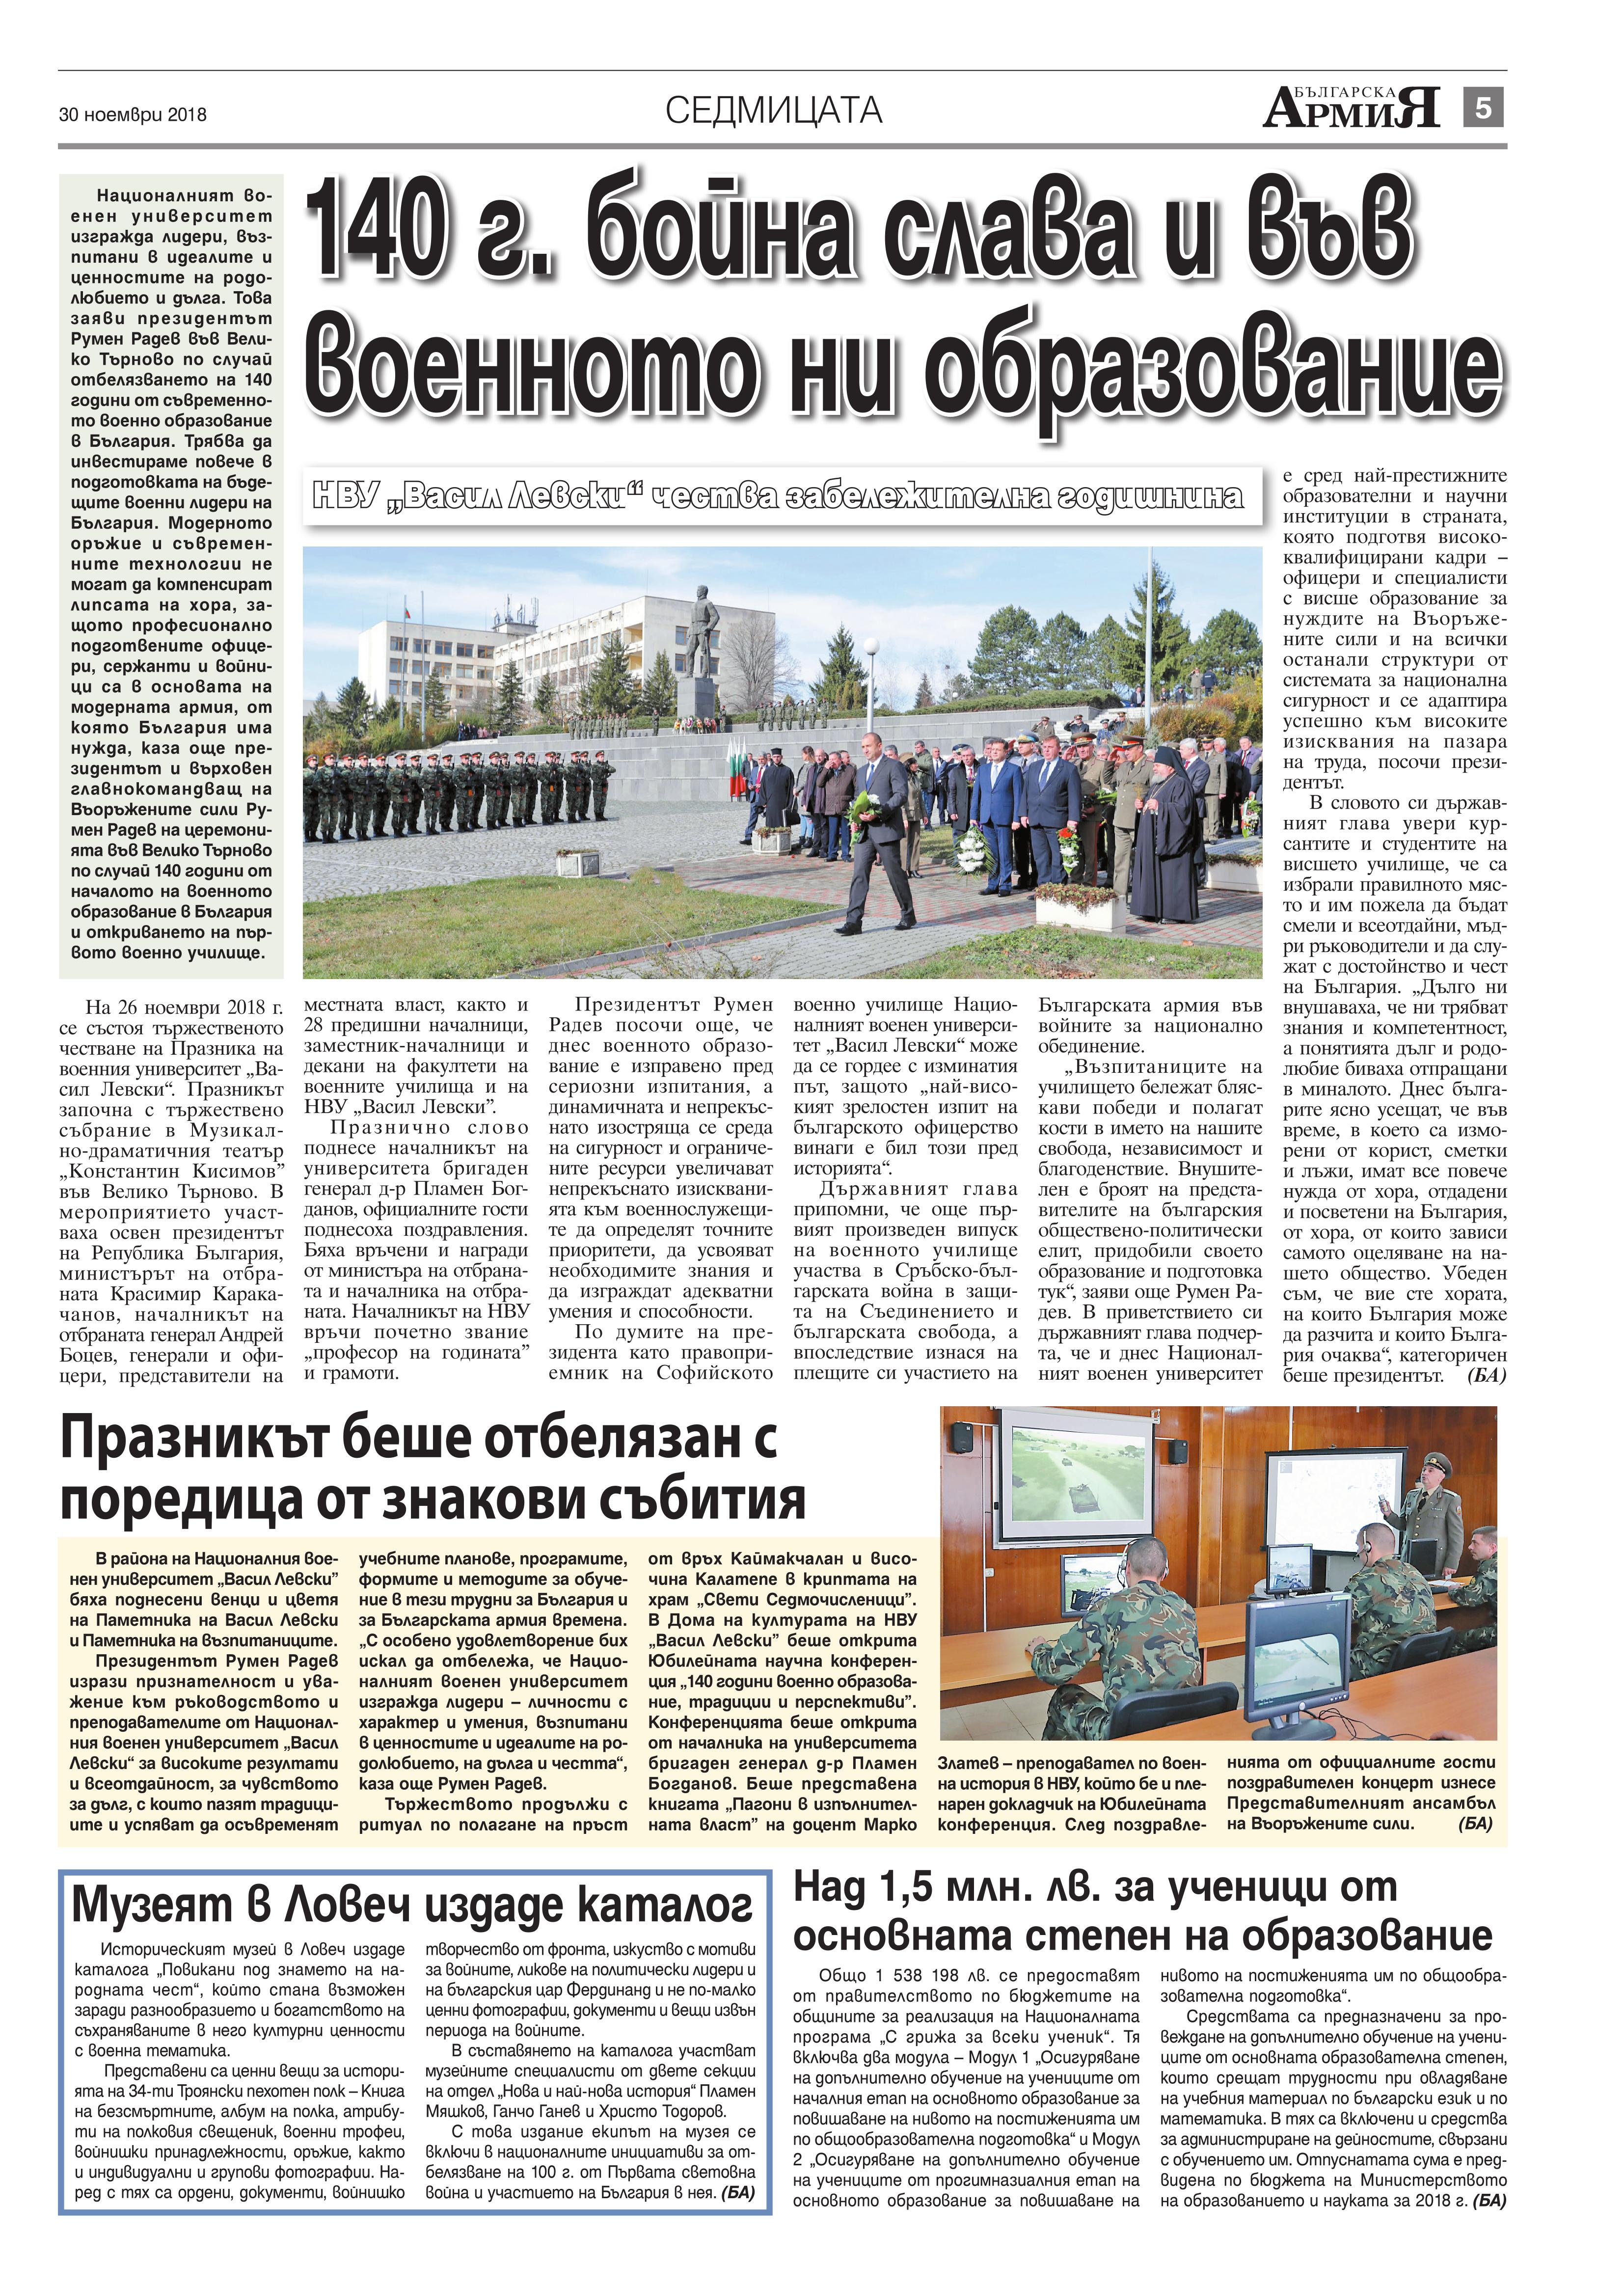 https://armymedia.bg/wp-content/uploads/2015/06/05.page1_-72.jpg